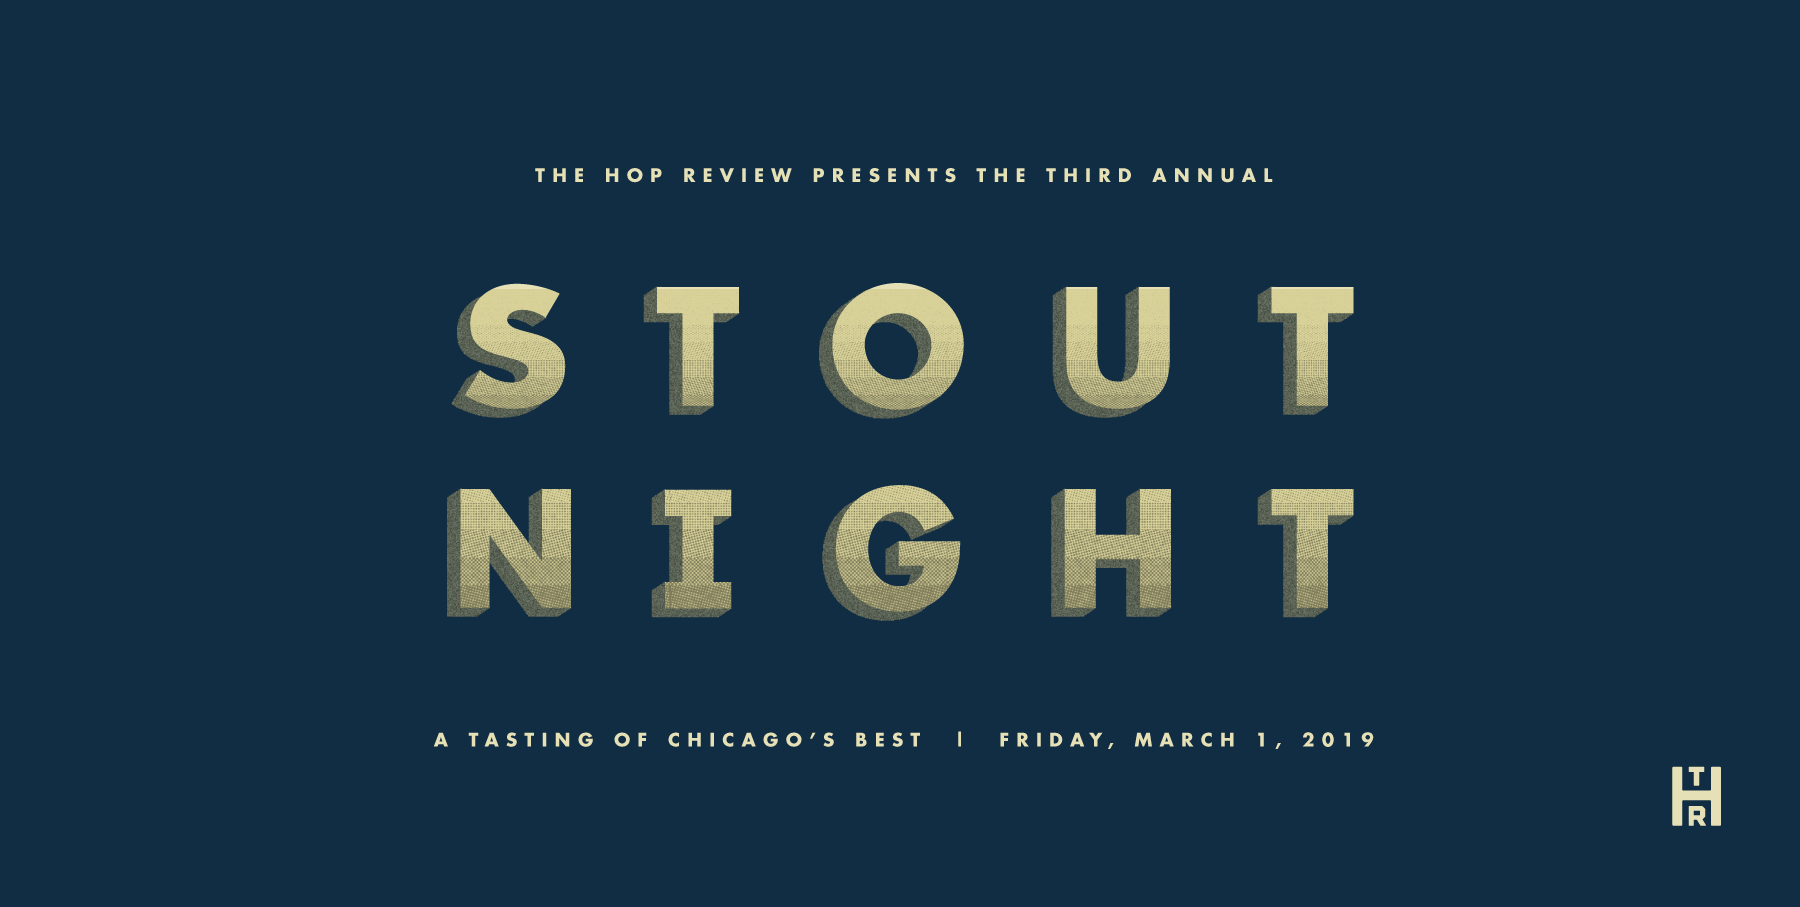 TheHopReview_StoutNight-2019-Graphic.png